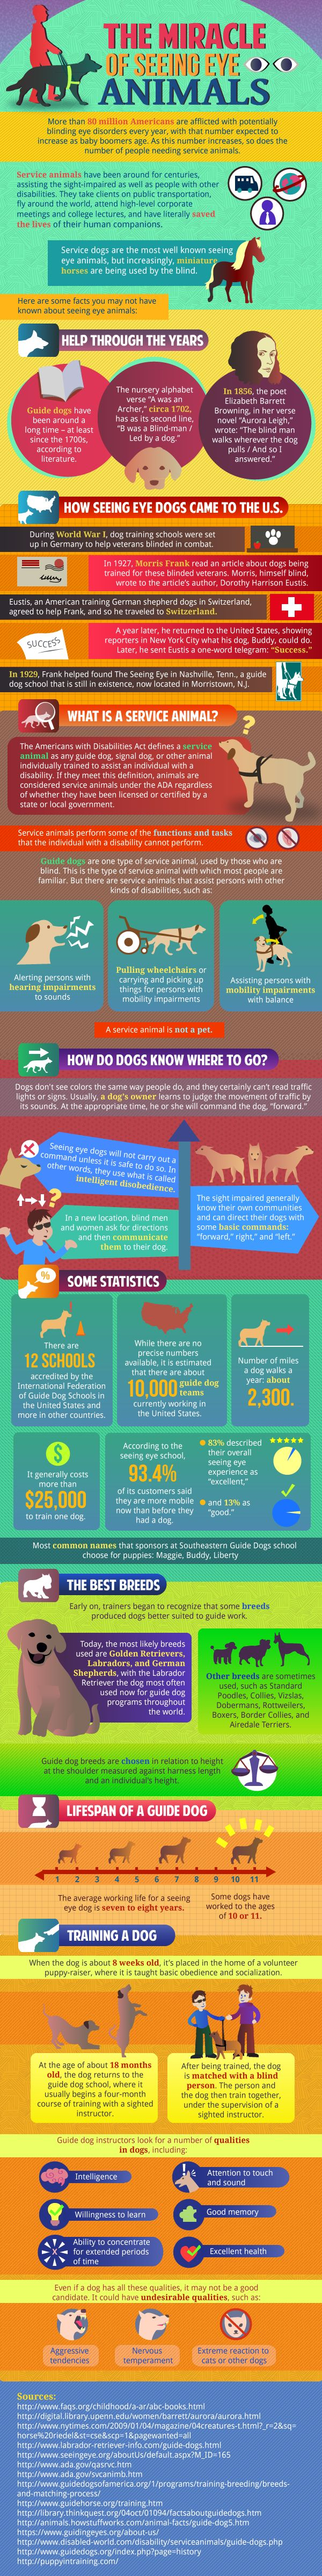 International Guide Dog Day Is April 24  2013. Did you know that the first Guide  Dog School was incorporated January 29, 1929? Morris Frank became the first American to use a dog guide and Buddy (a female) German shepherd, became the pioneer dog guide in America.